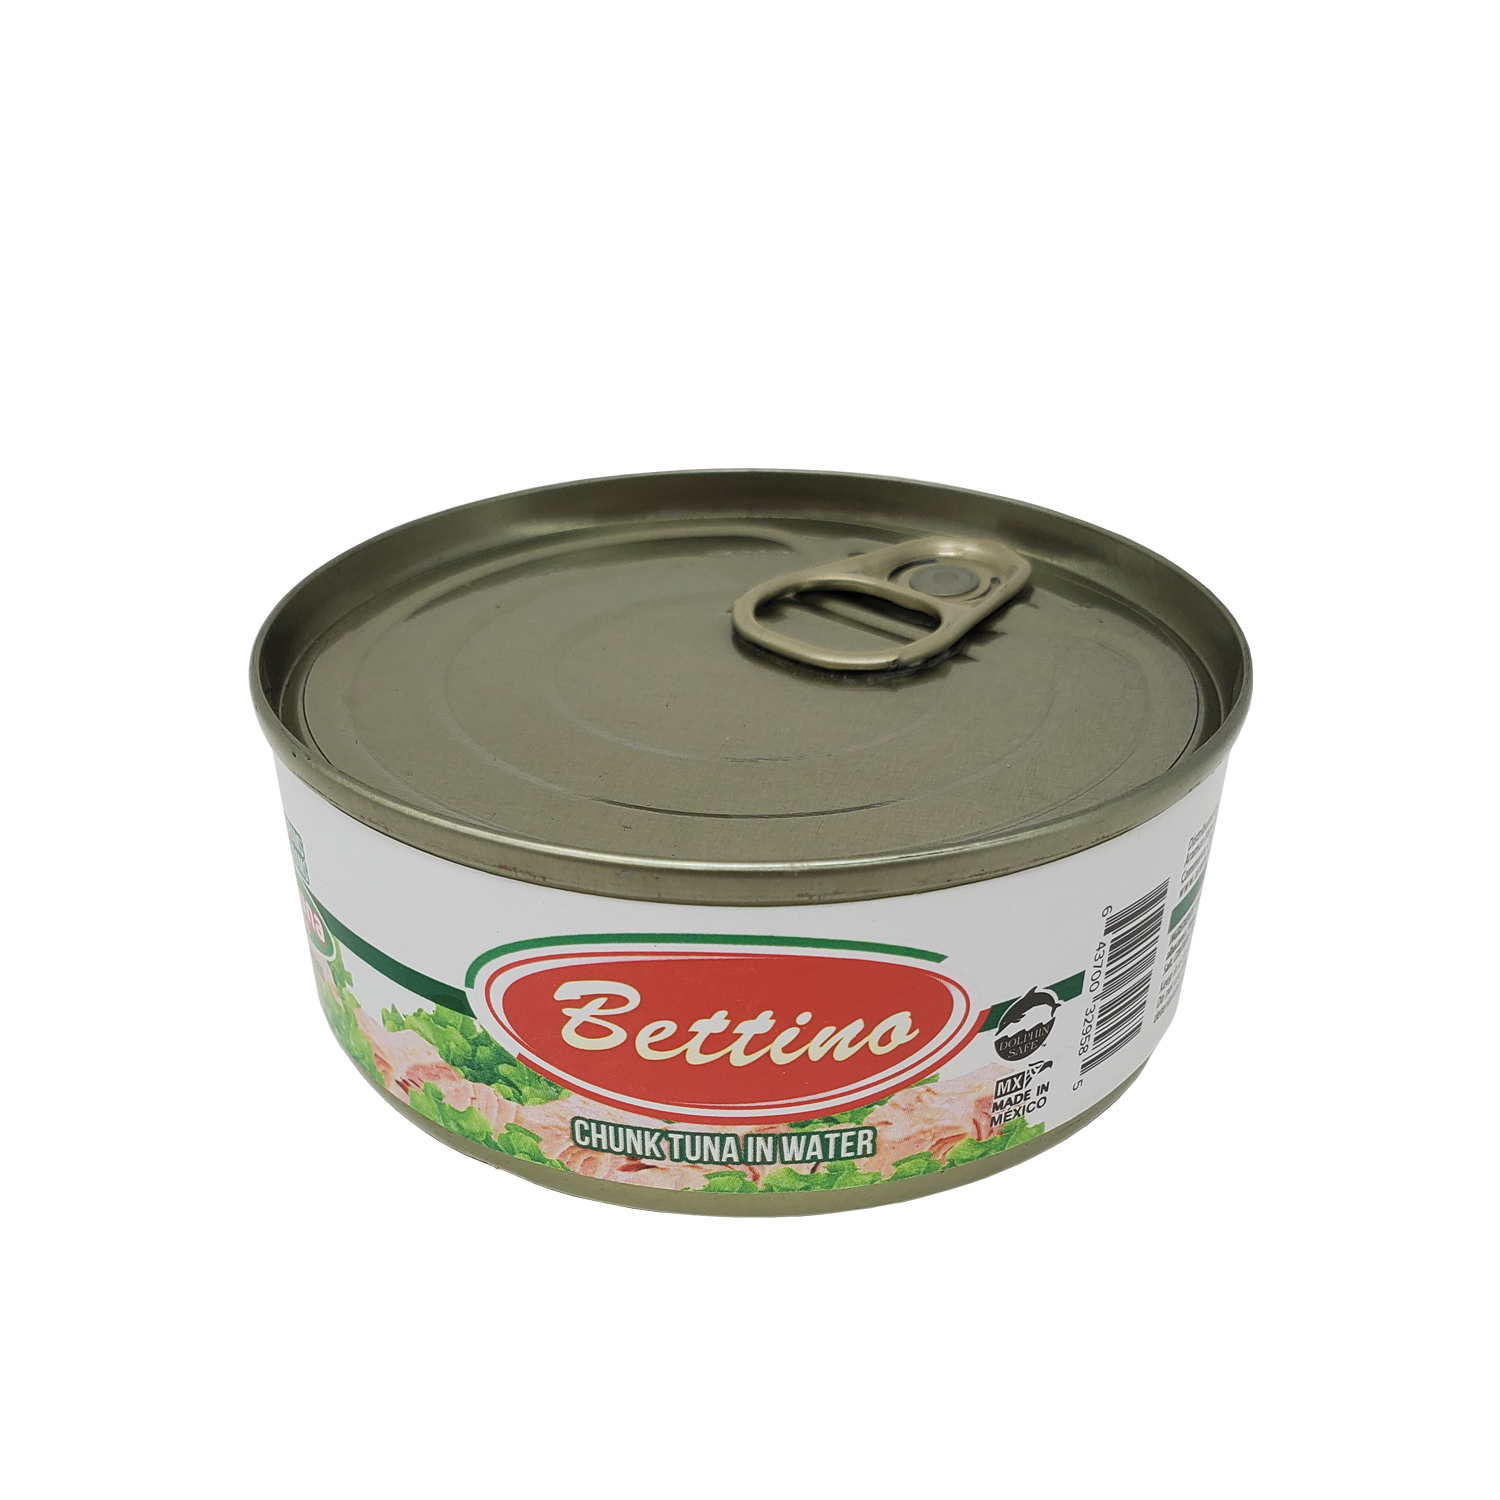 Canned Yellow Fin Tuna in water